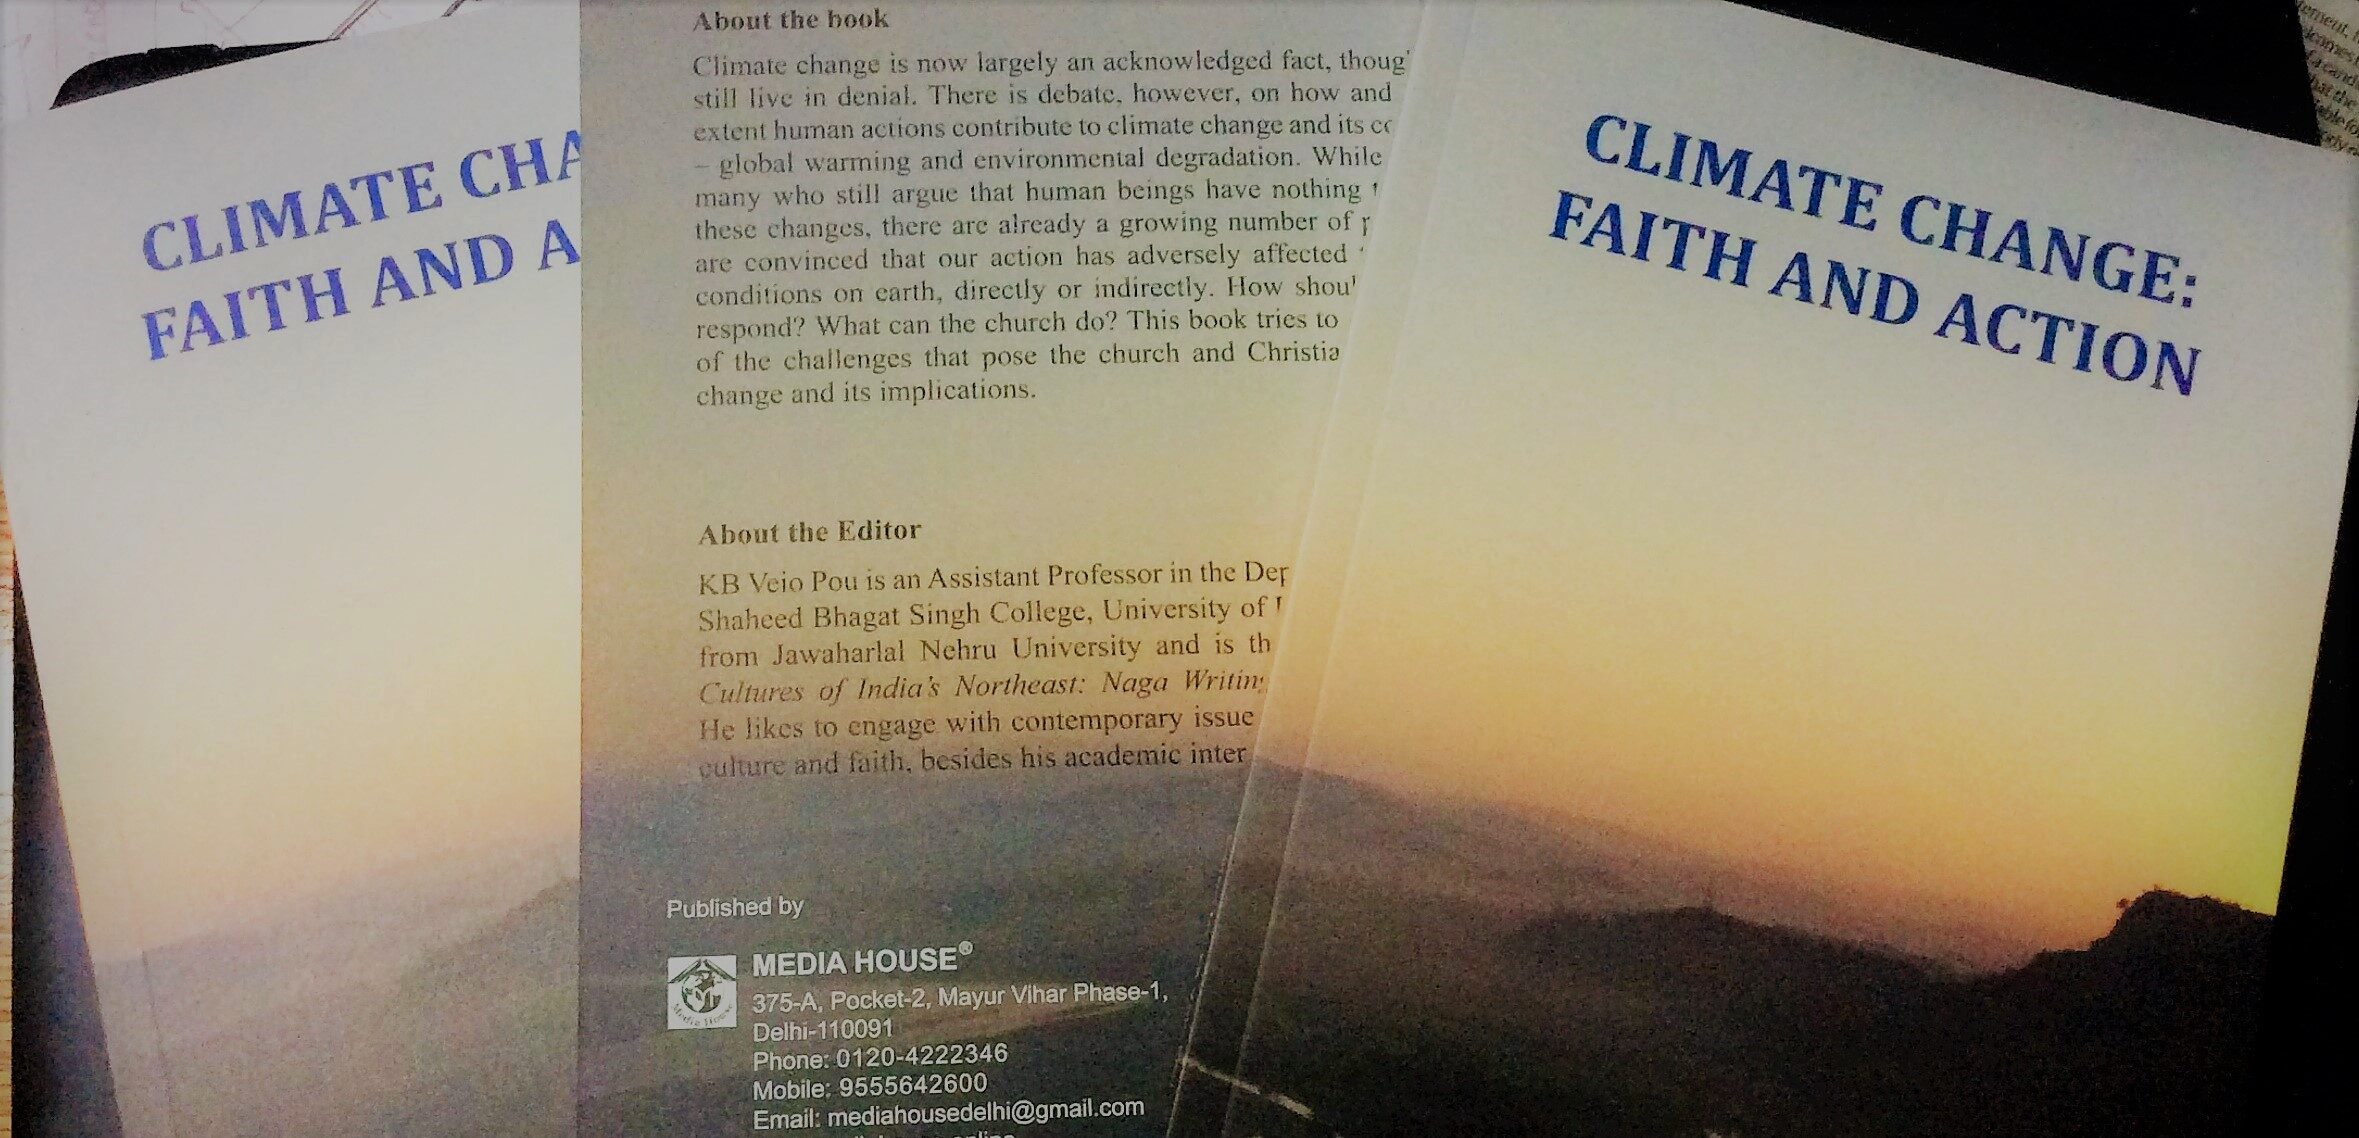 CLIMATE CHANGE: FAITH AND ACTION